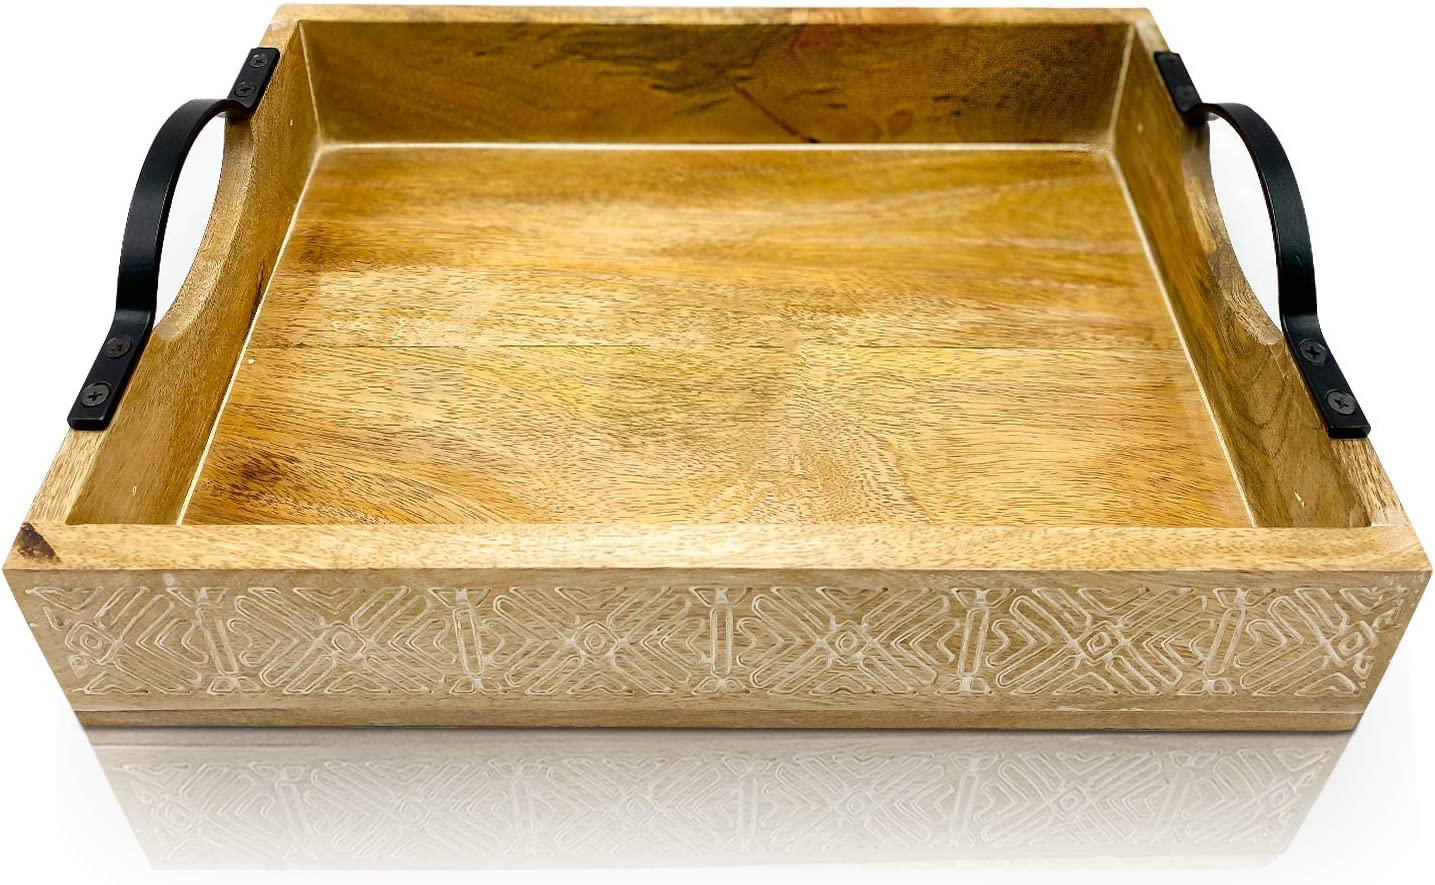 Olive + Crate KitchenPerfect Large Hand Made Decorative Wooden Serving Trays for Coffee Table with Handles, Rustic Farmhouse Style, for Eating Or Drinks On Sofa, Living Room, Kitchen Or in Bed…